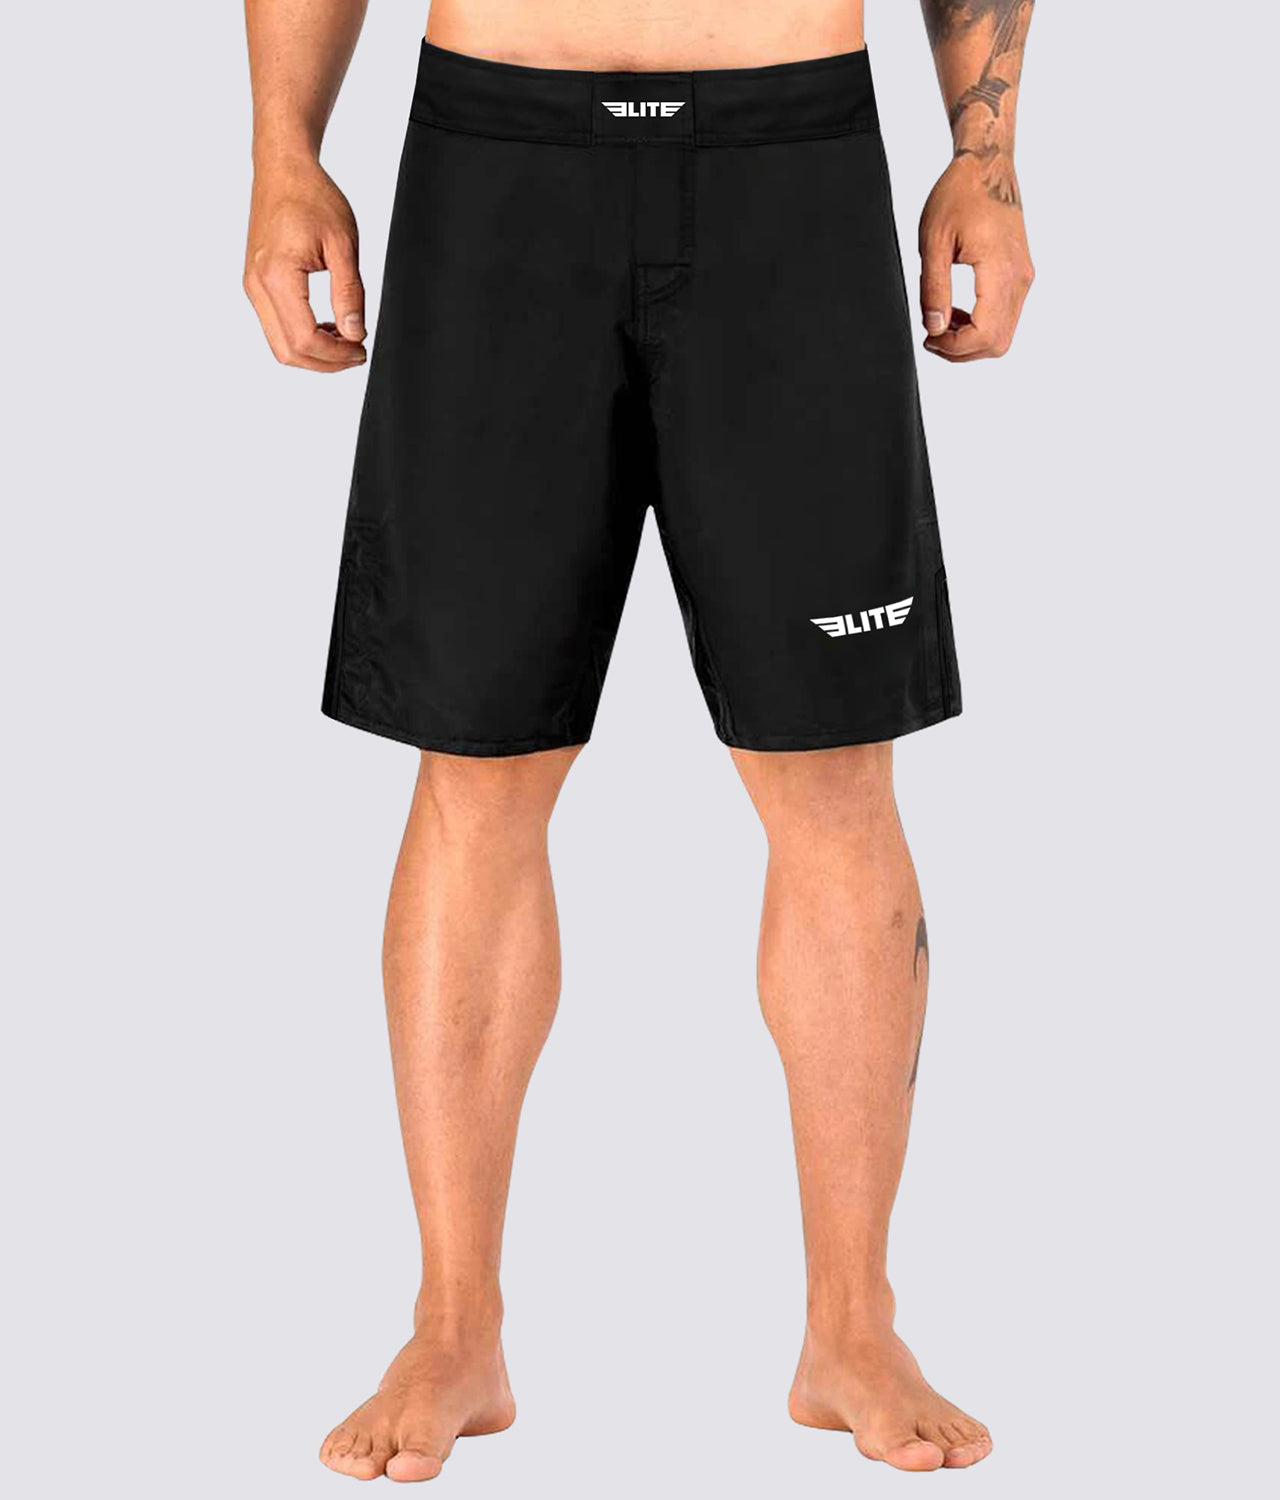 Elite Sports Black Jack Series Antibacterial Black/Black Wrestling Shorts